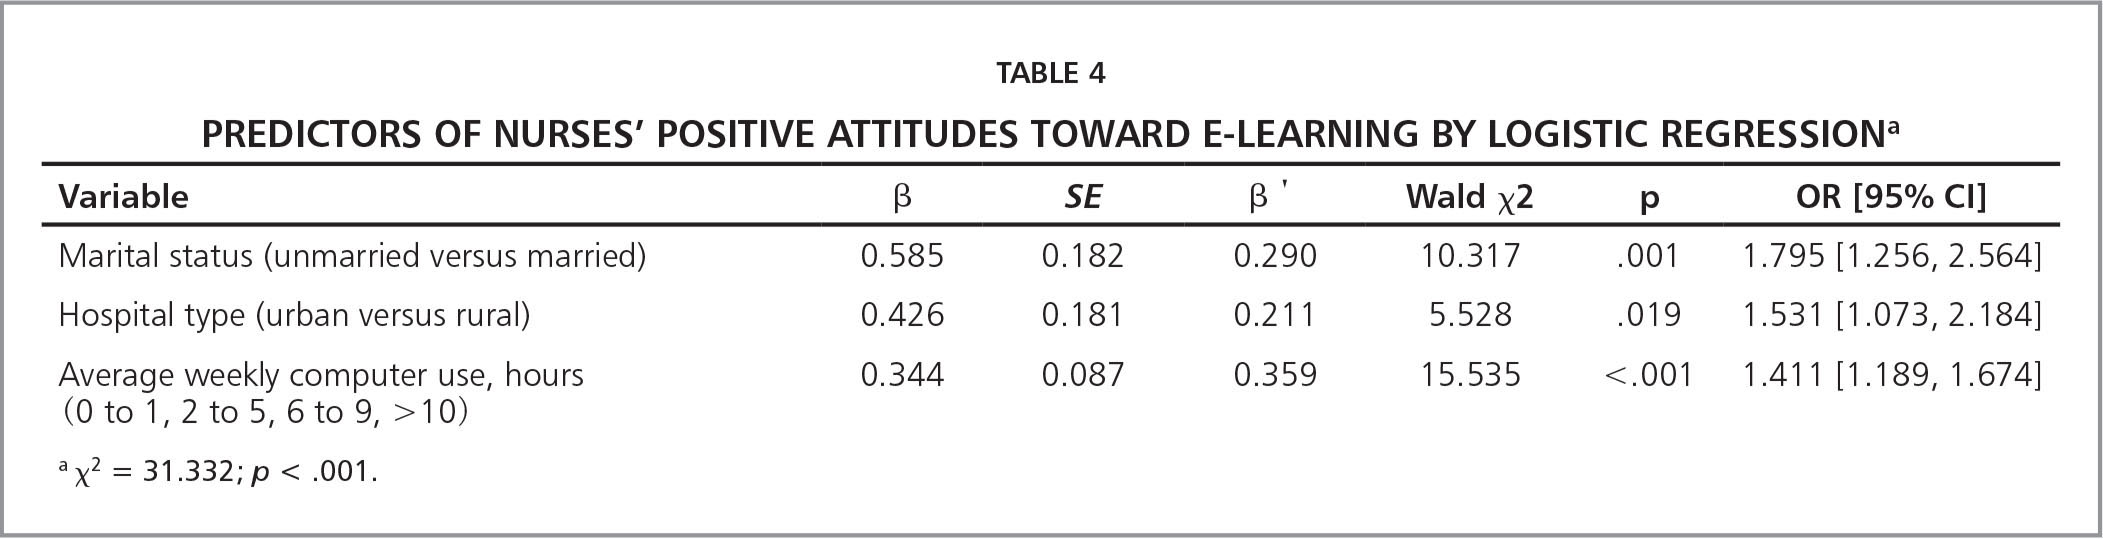 Predictors of Nurses' Positive Attitudes Toward e-Learning by Logistic Regressiona